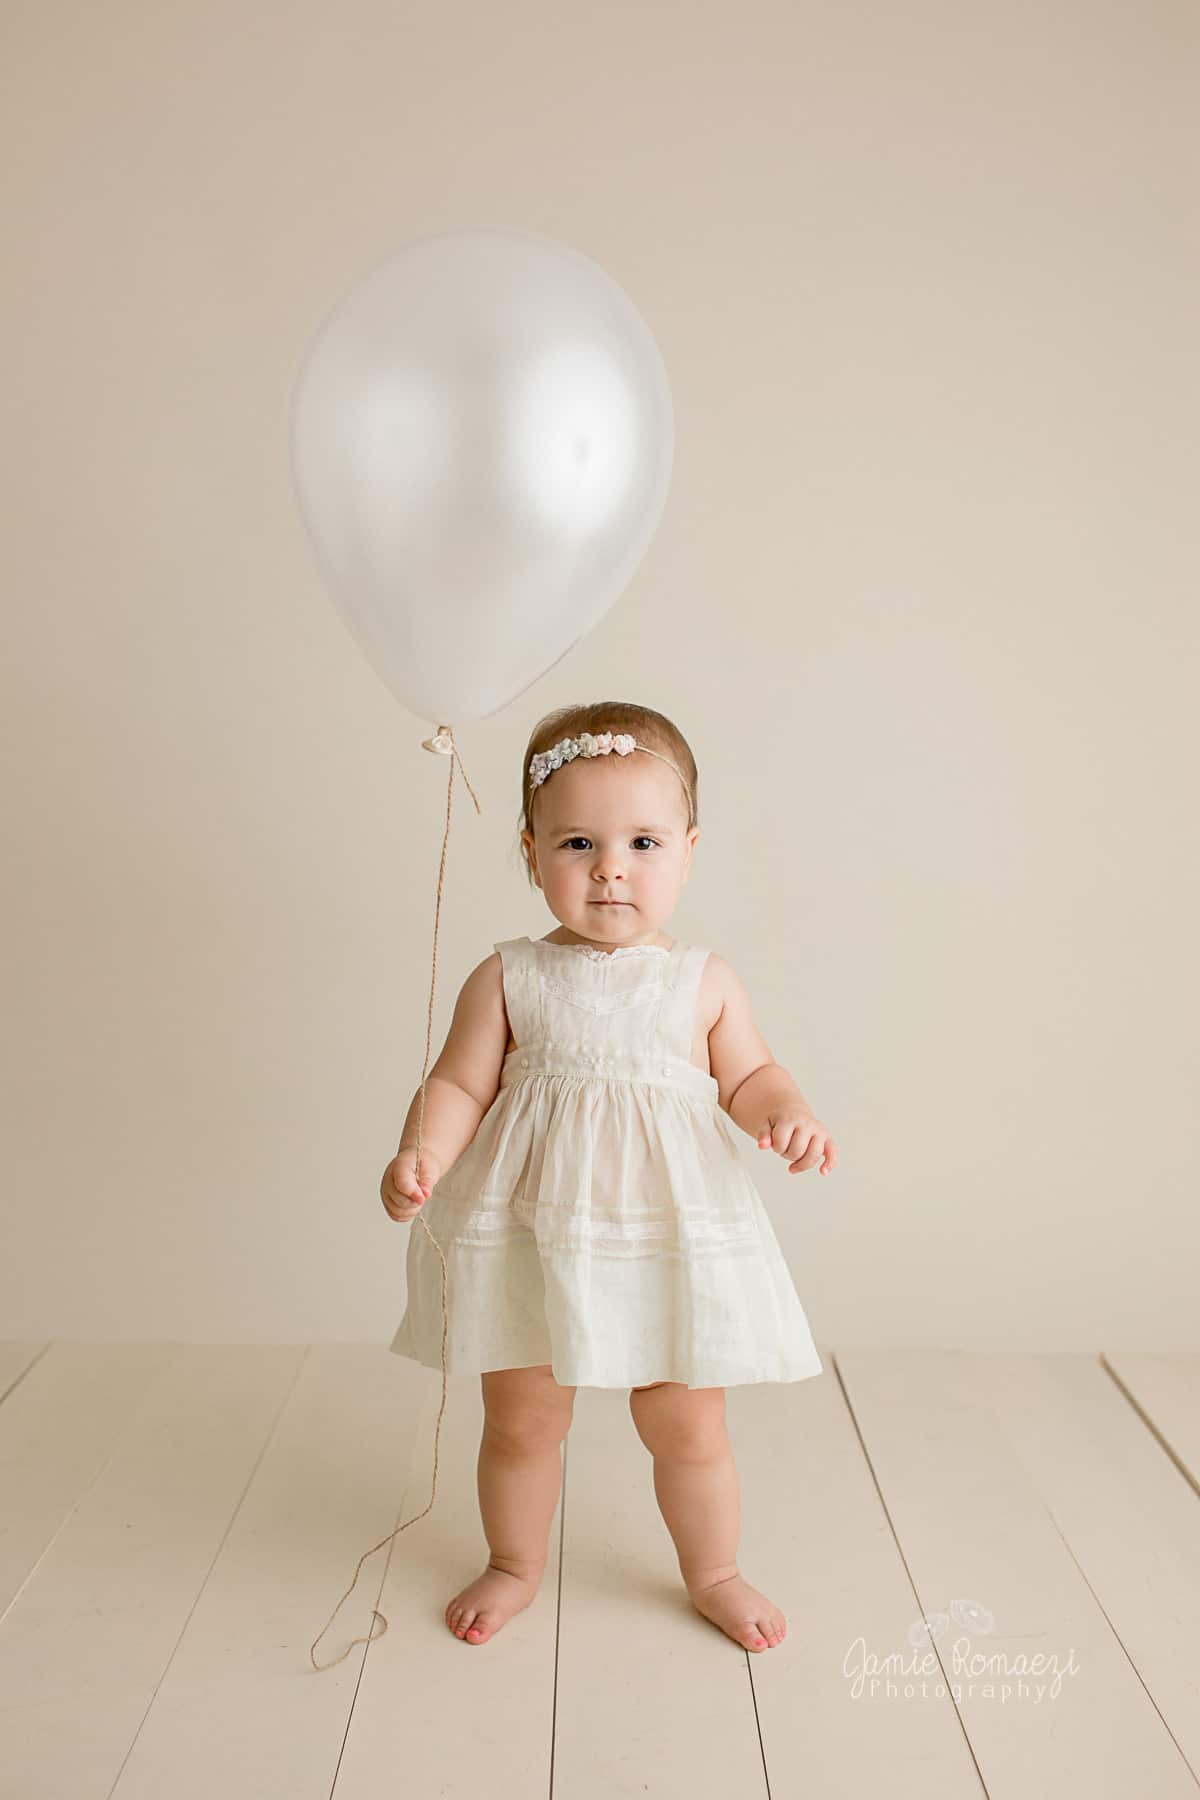 standing holding a cream colored balloon with twine for string.